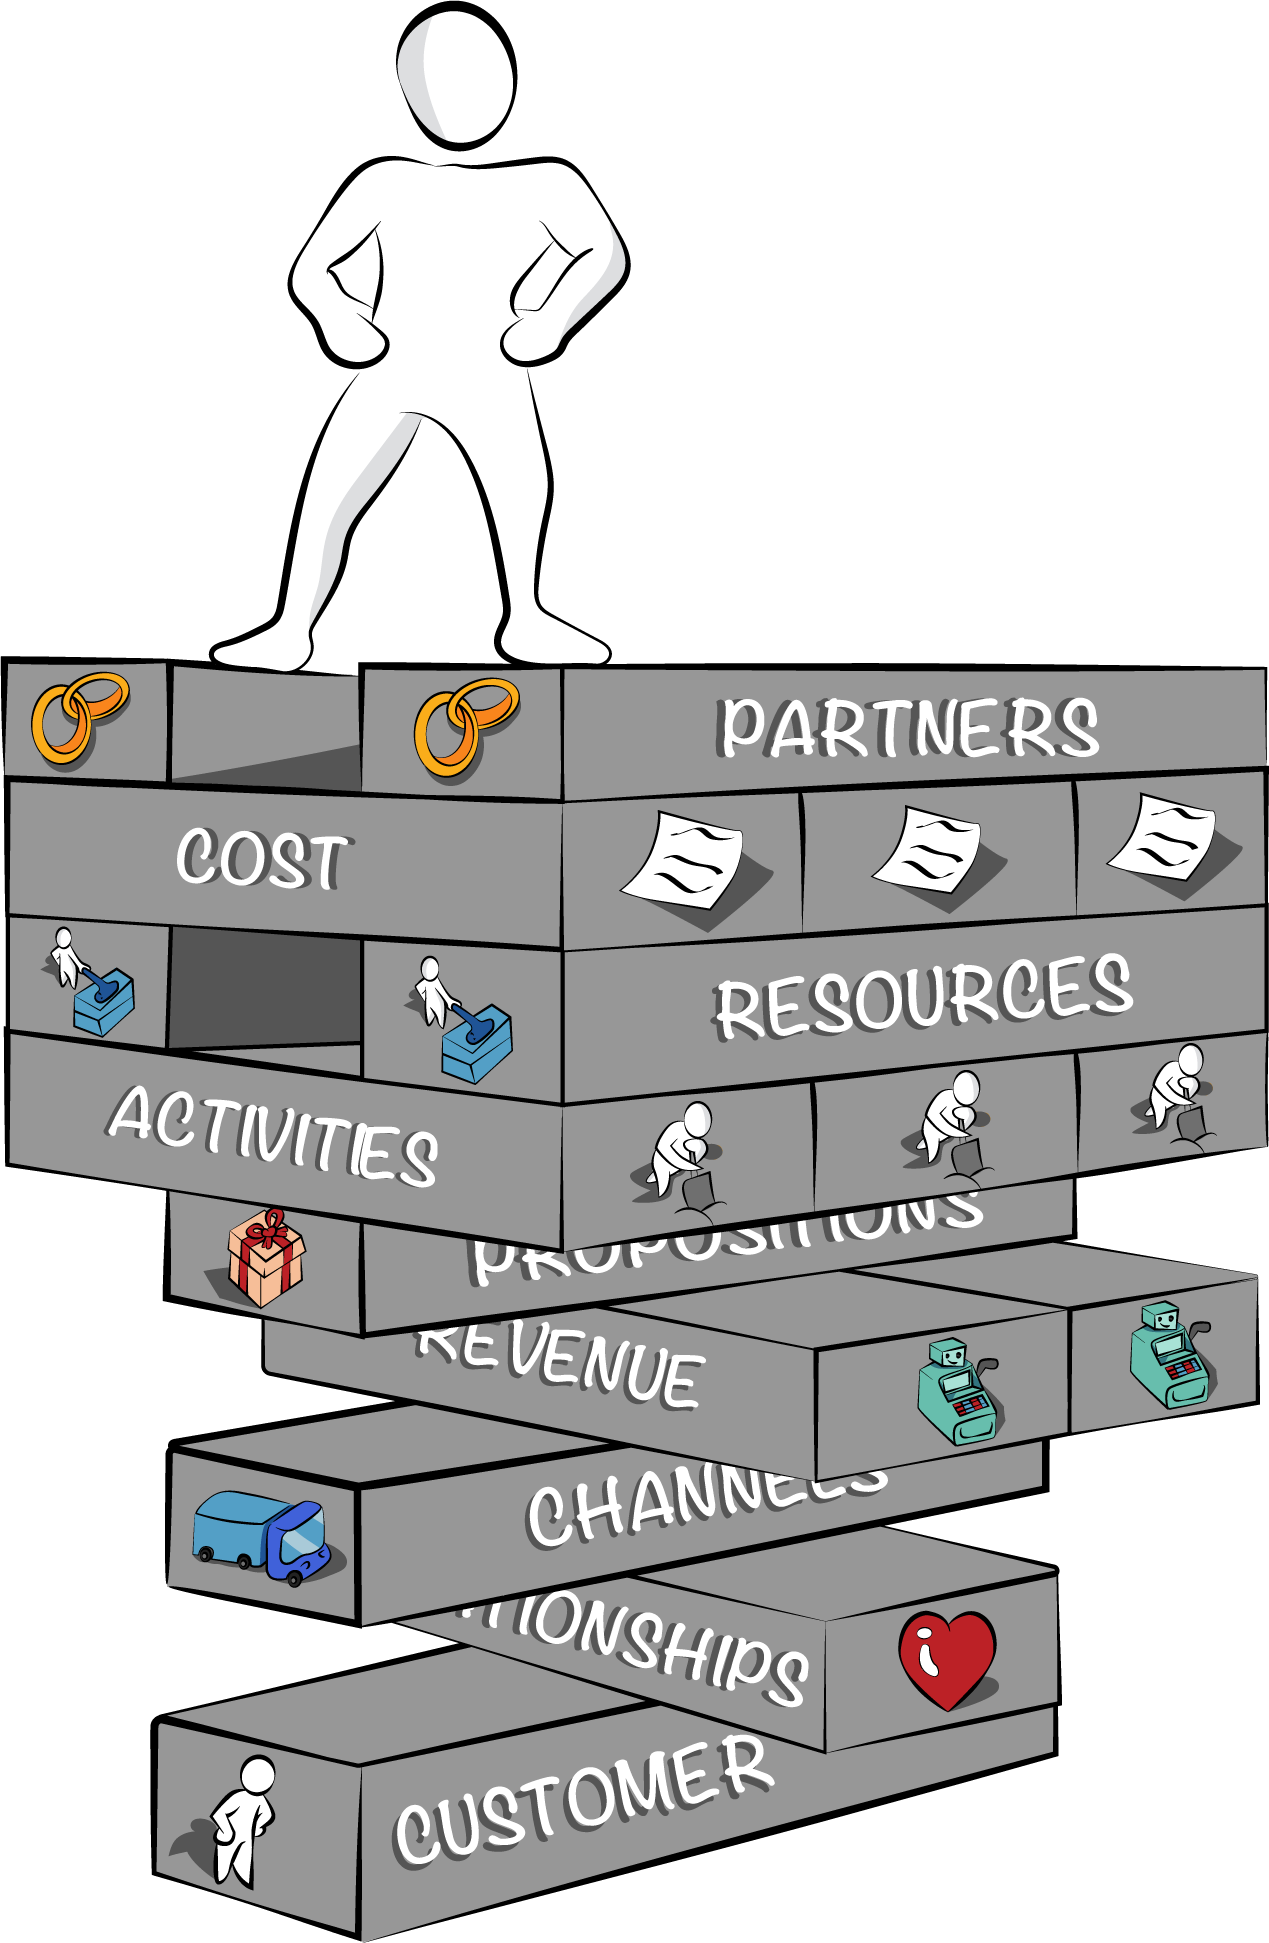 A business model canvas is useful only as long as it takes into account causal relationships between the boxes.